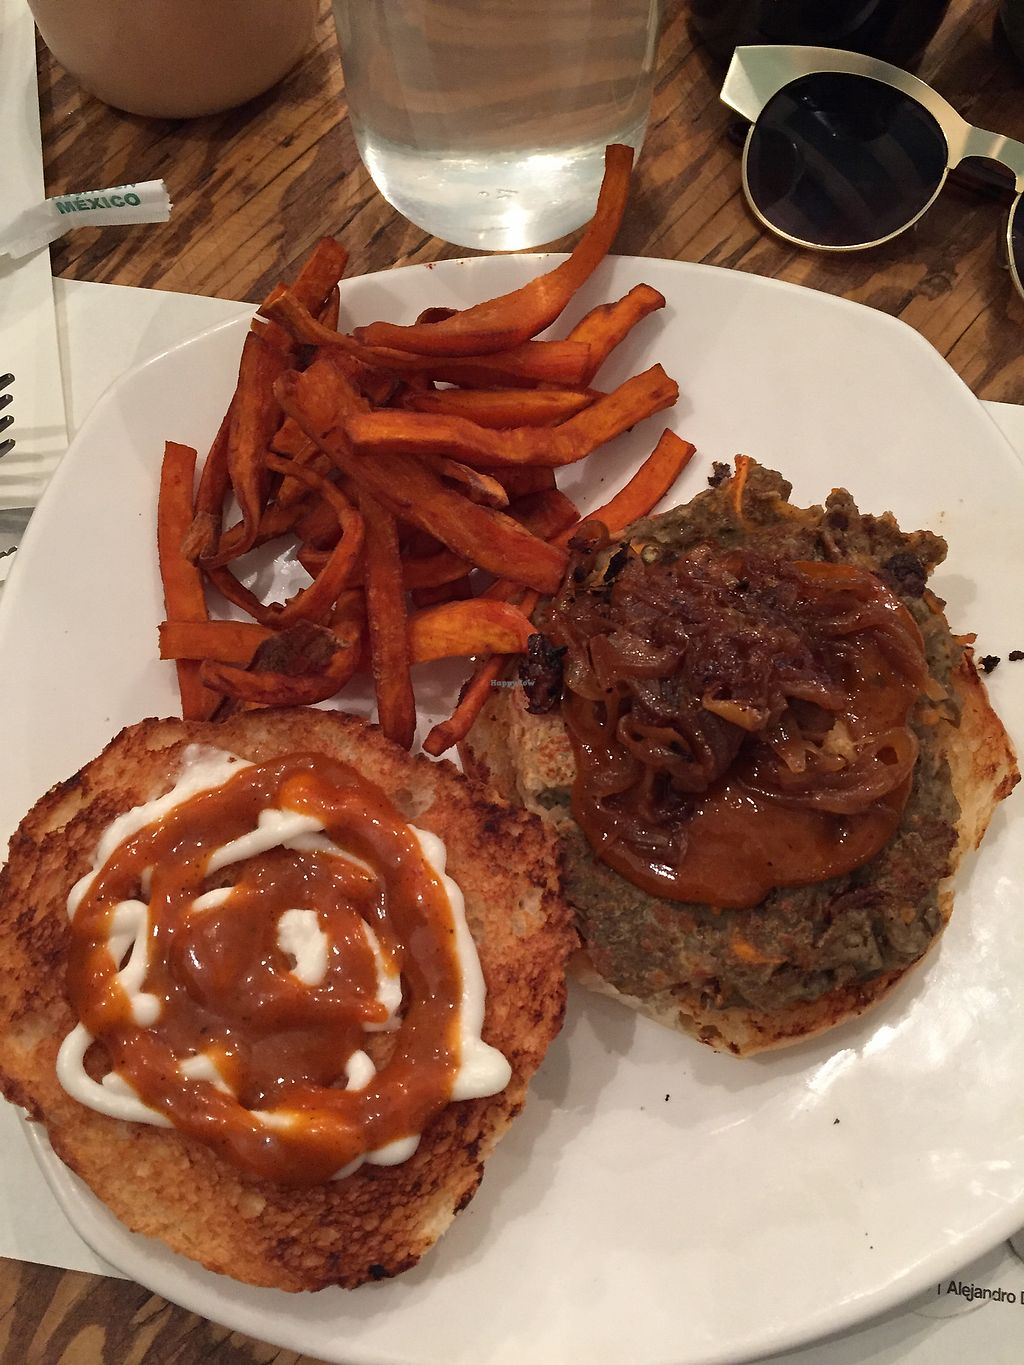 """Photo of Forever - Polanco  by <a href=""""/members/profile/Hope93"""">Hope93</a> <br/>BBQ burger  <br/> February 21, 2018  - <a href='/contact/abuse/image/67945/362144'>Report</a>"""